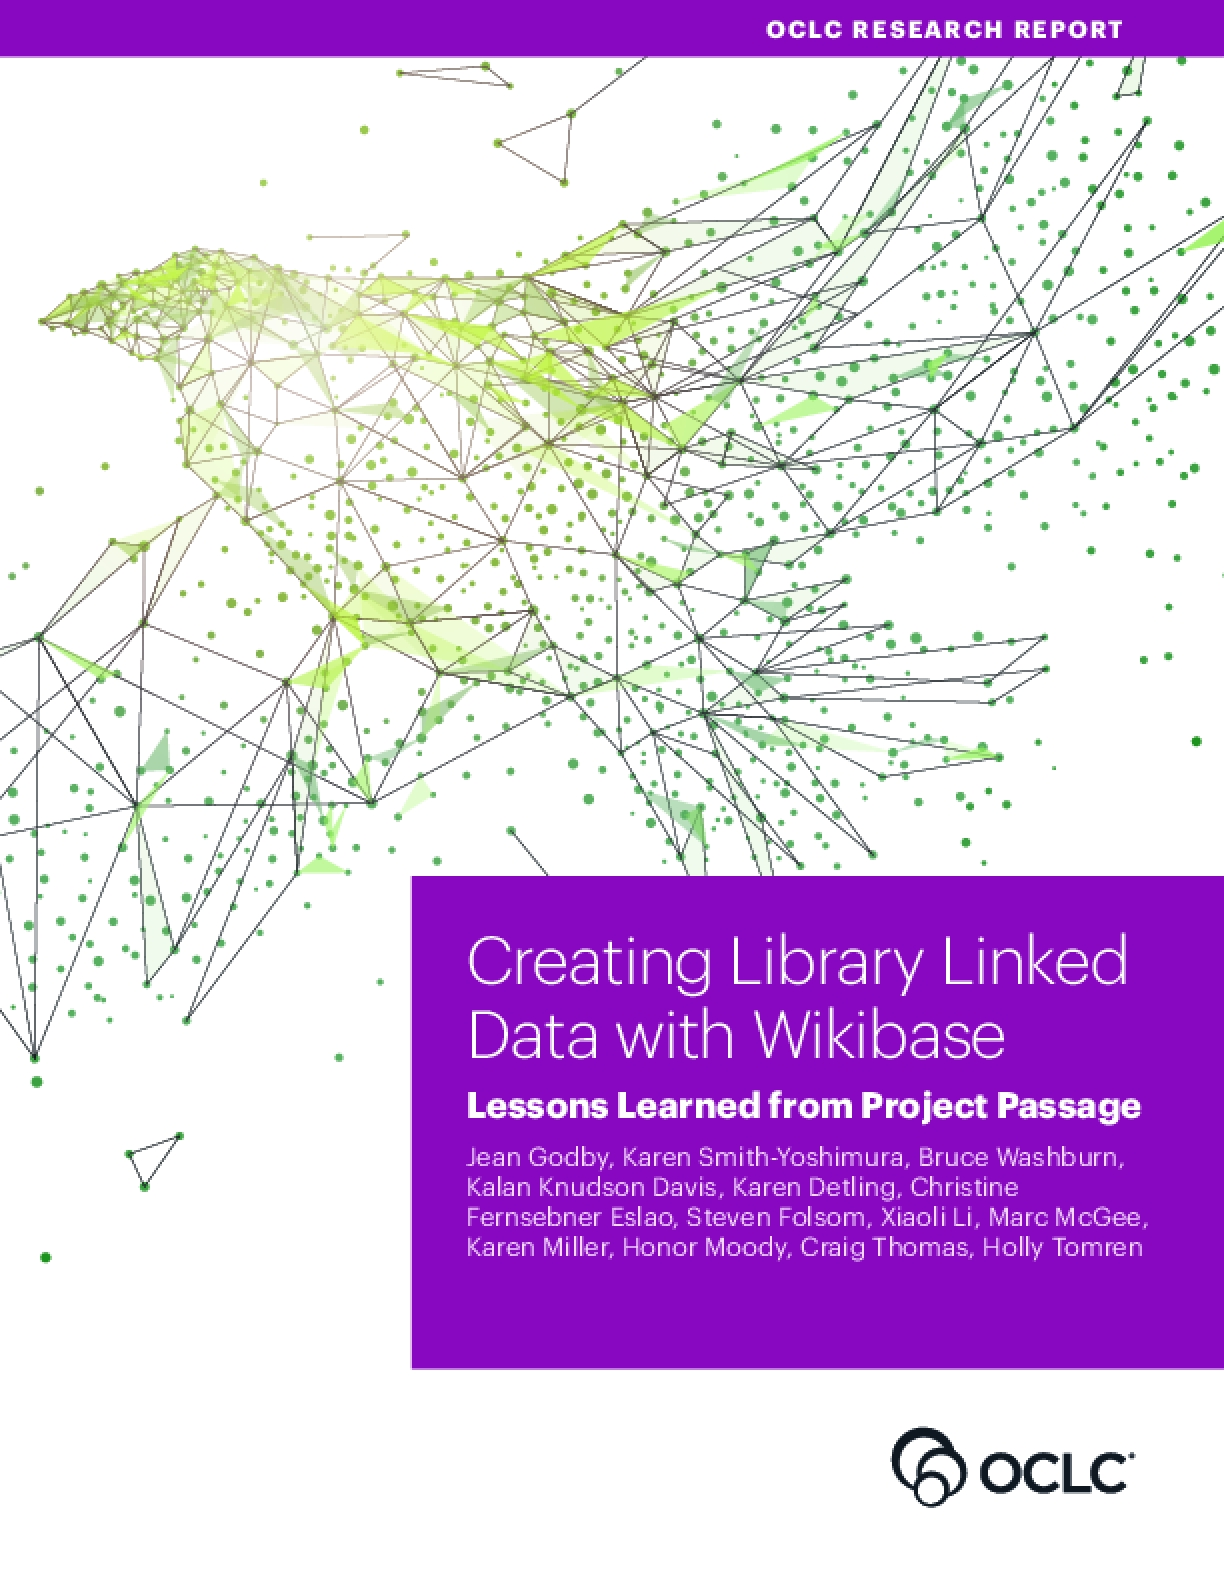 Creating Library Linked Data with Wikibase: Lessons Learned from Project Passage